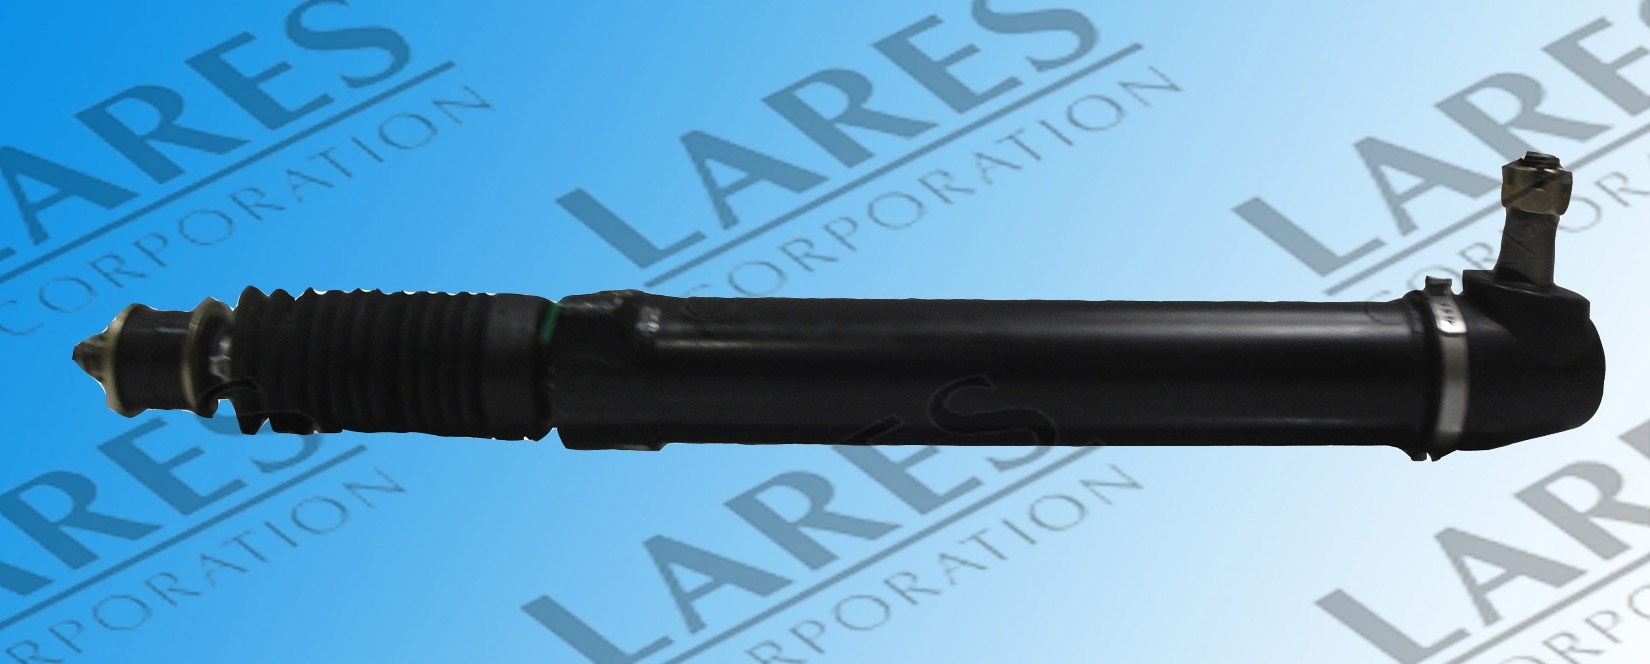 Power Steering Cylinder, Part No. 10075